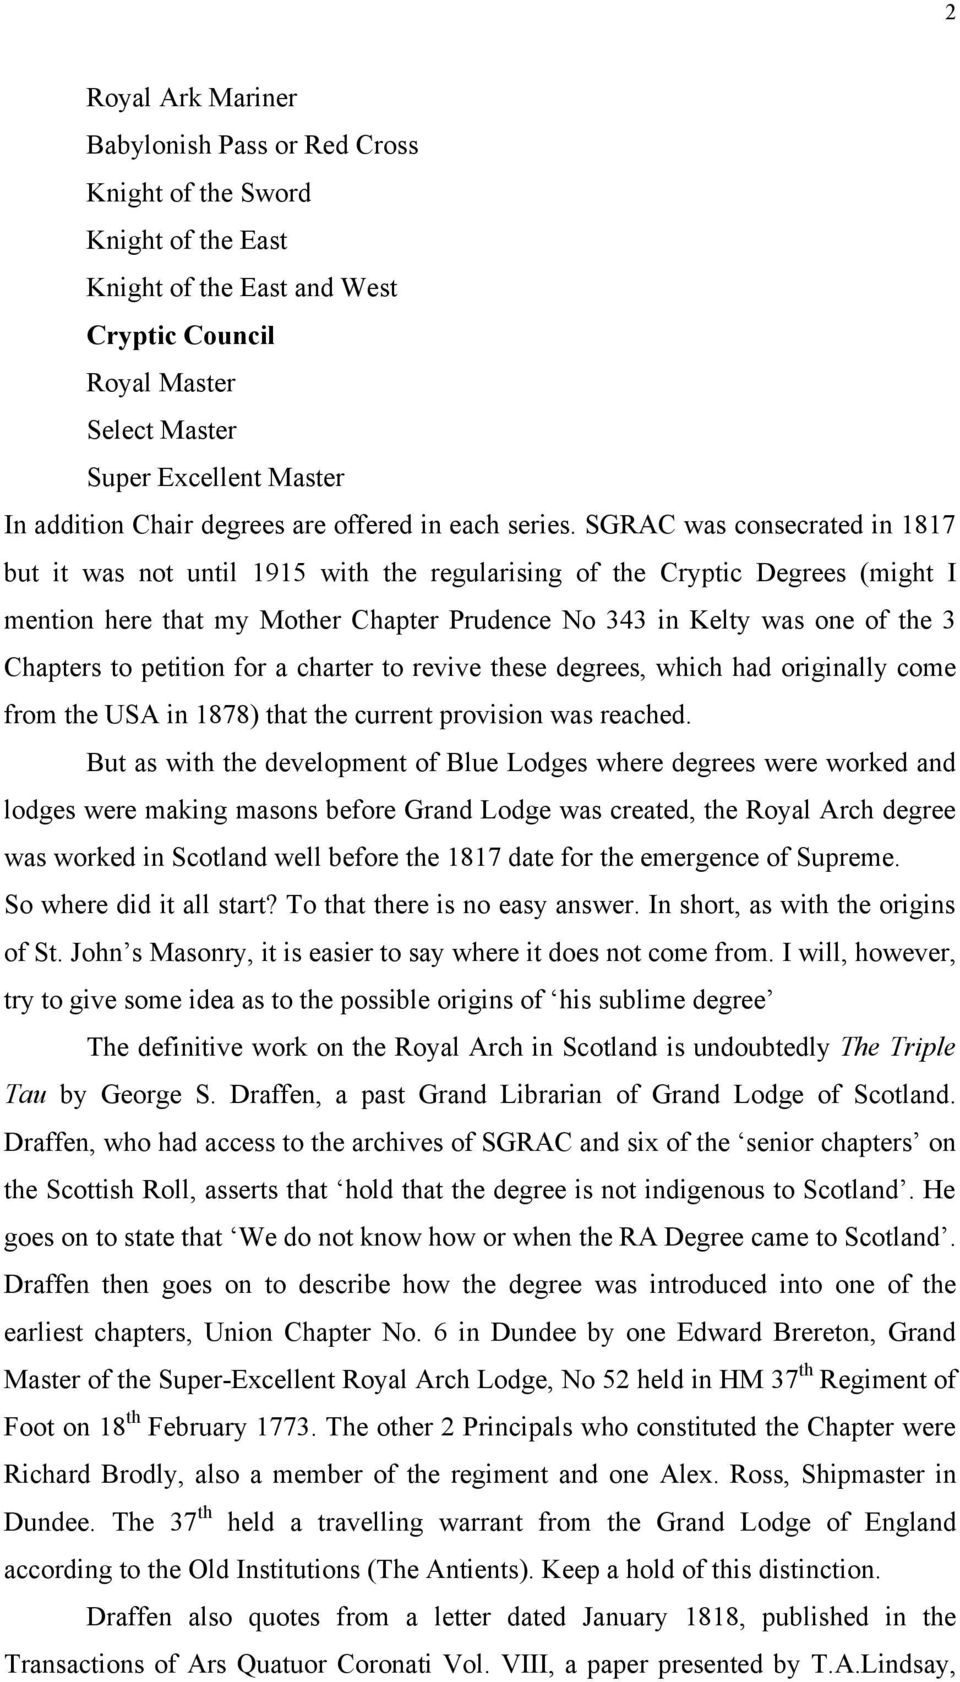 SGRAC was consecrated in 1817 but it was not until 1915 with the regularising of the Cryptic Degrees (might I mention here that my Mother Chapter Prudence No 343 in Kelty was one of the 3 Chapters to